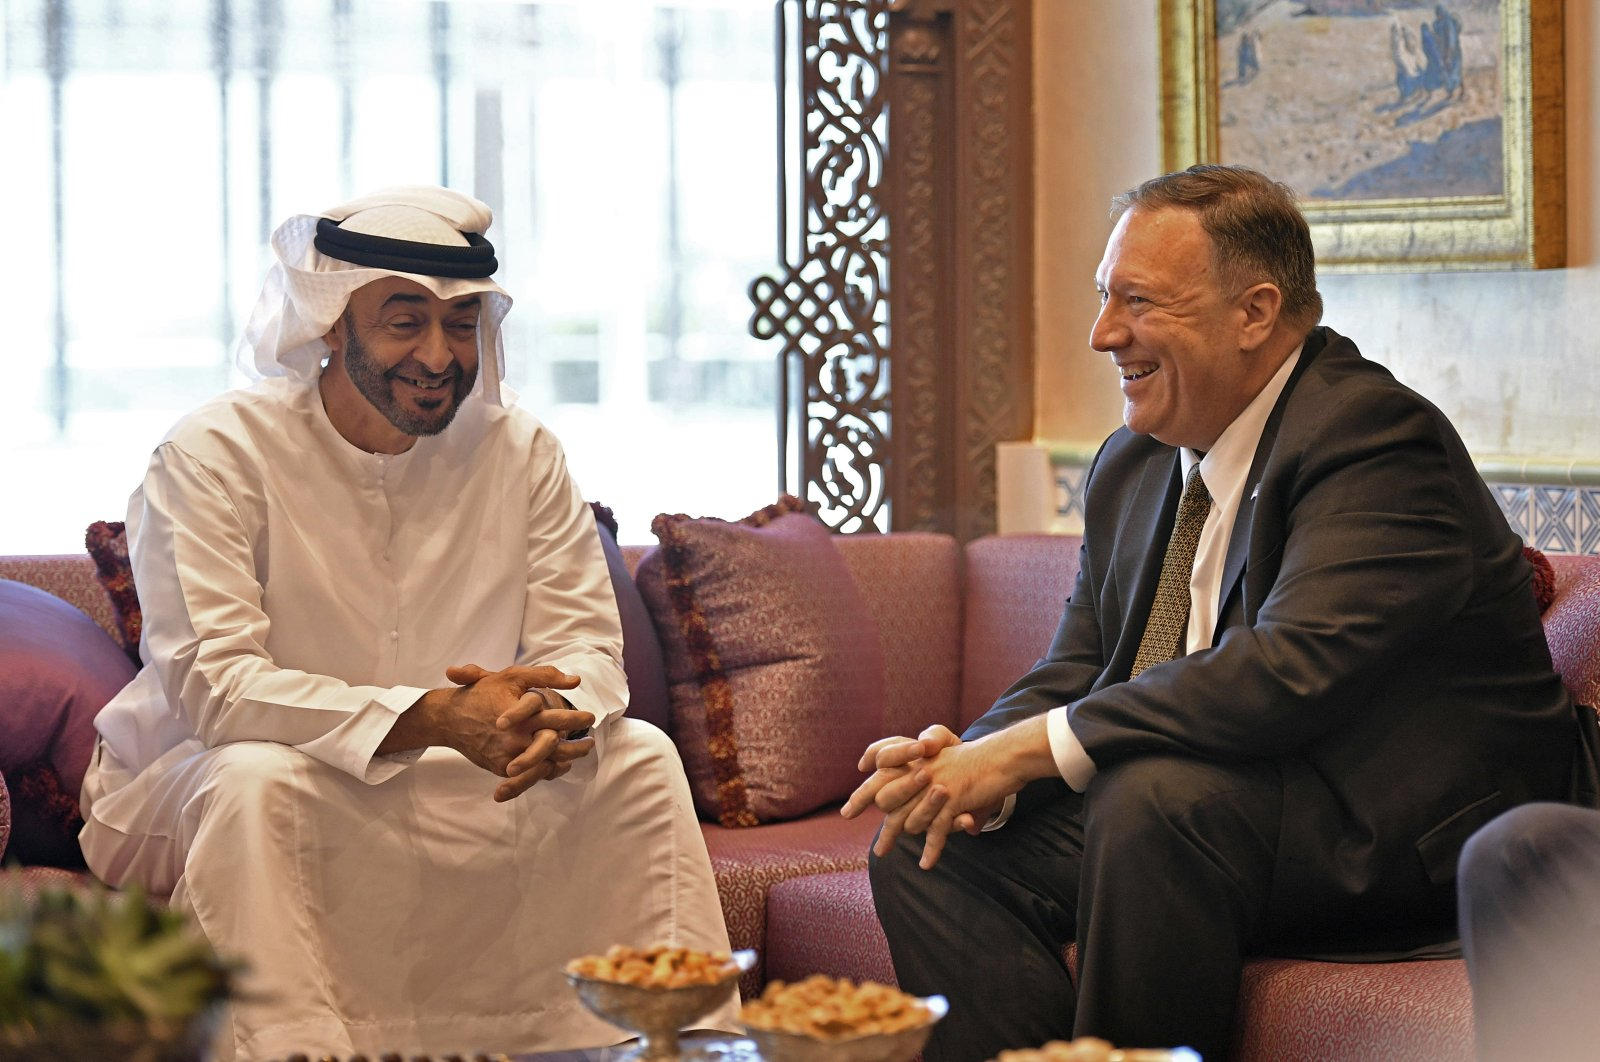 U.S. Secretary of State Mike Pompeo meets with Abu Dhabi Crown Prince Mohamed bin Zayed al-Nahyan in Abu Dhabi, United Arab Emirates, Sept. 19, 2019. (AP Photo)